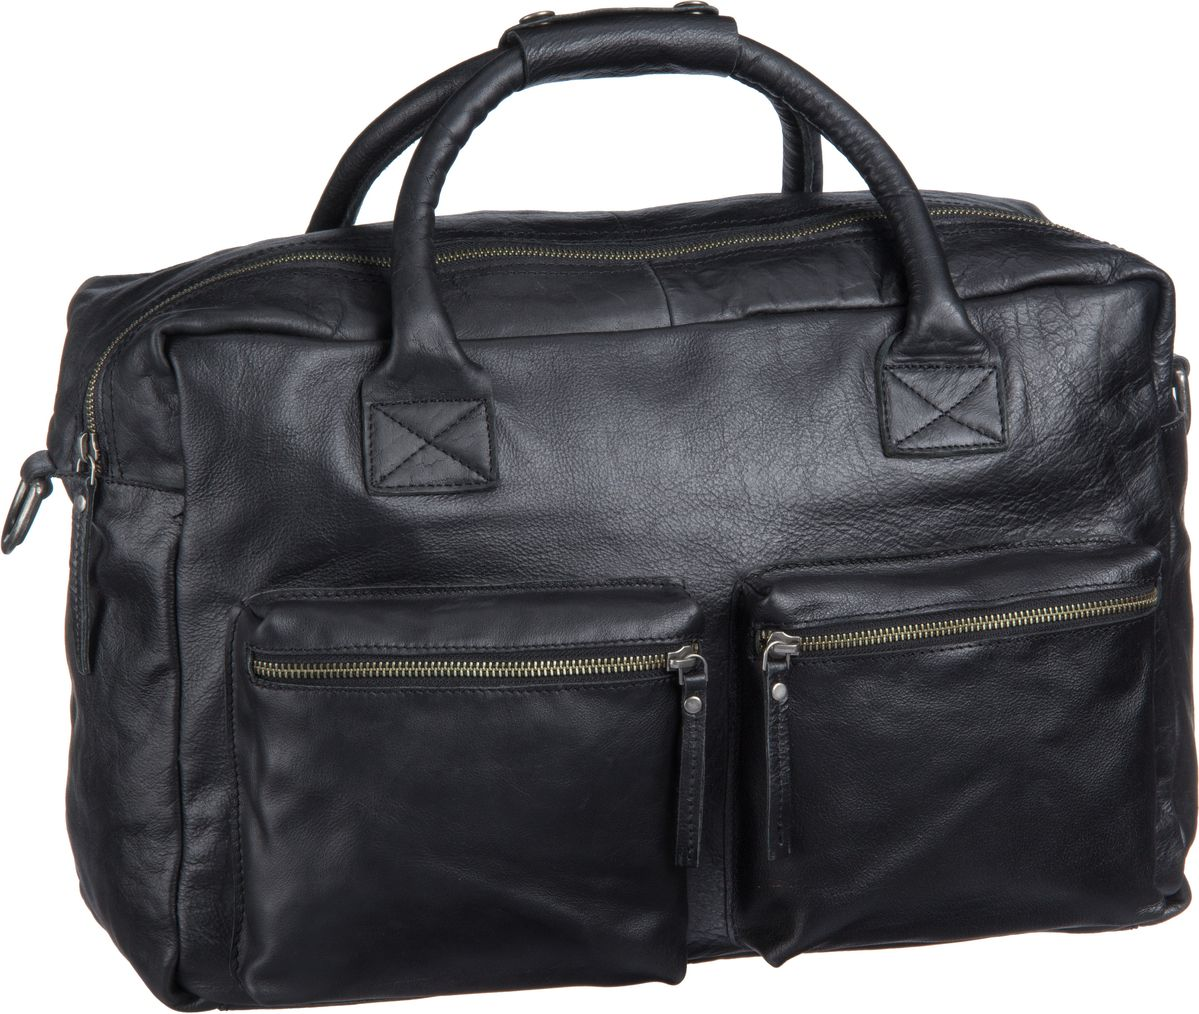 Legend Dallas Black - Handtasche